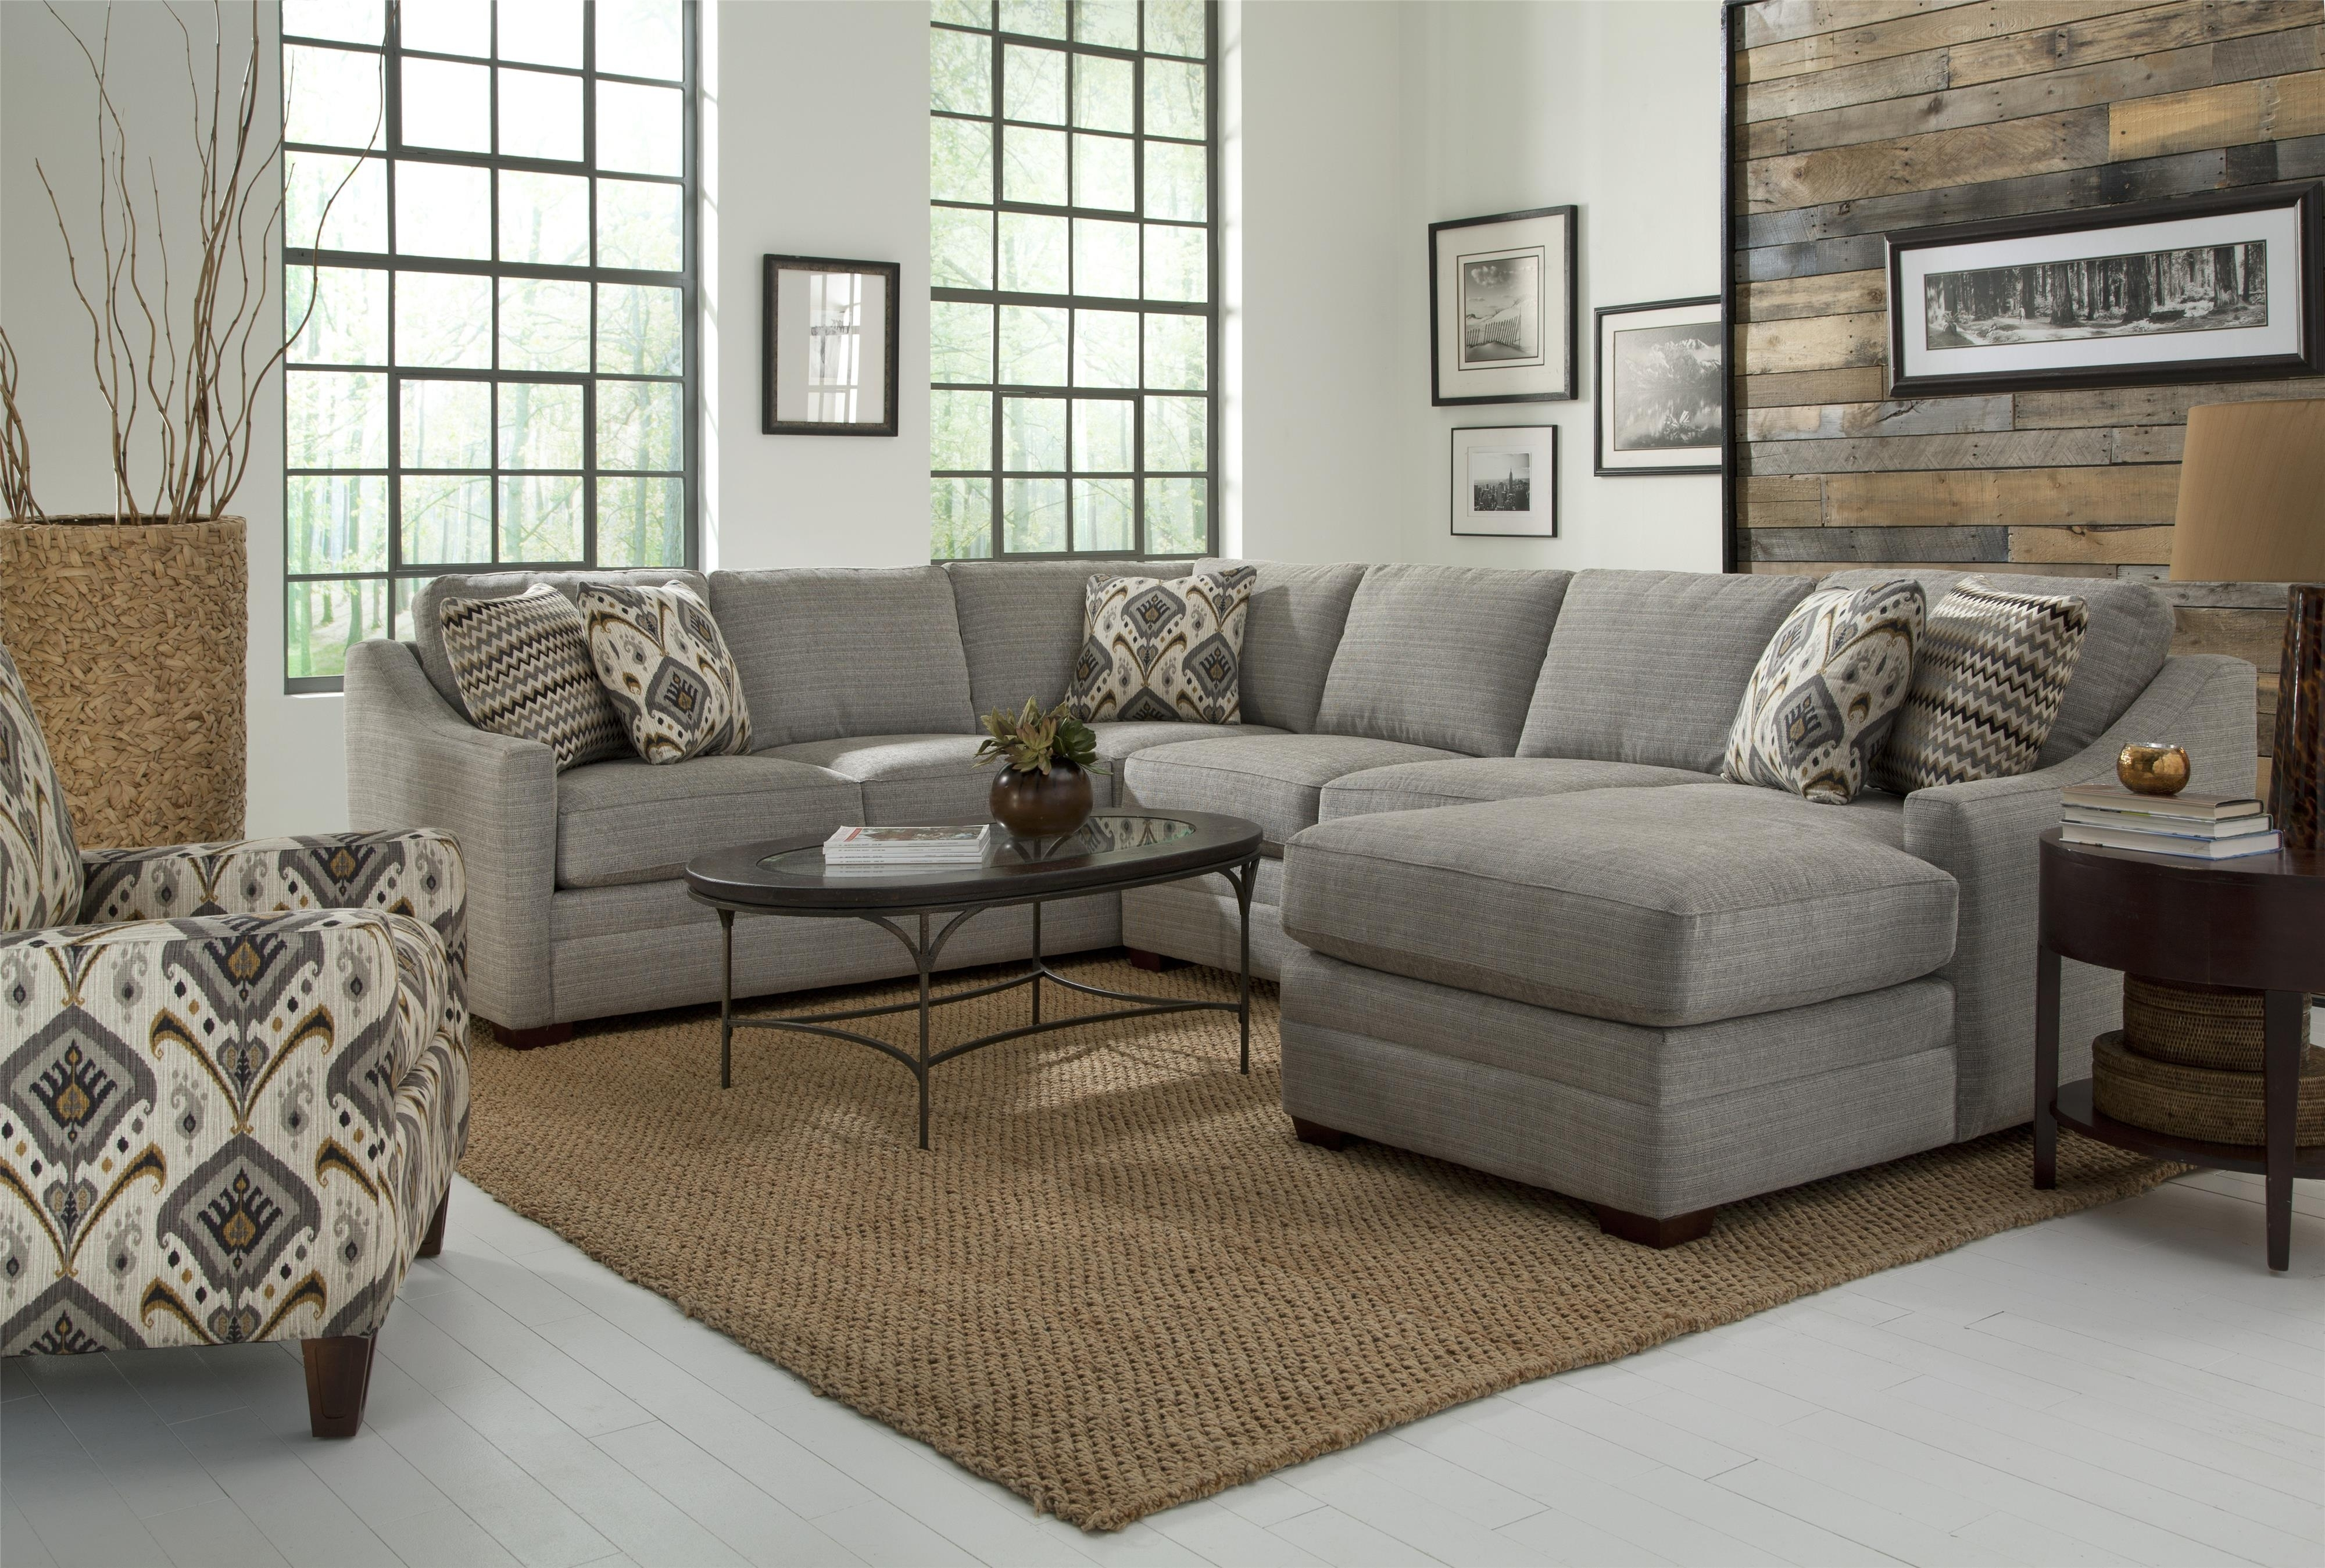 Craftmaster F9 Custom Collection Customizable Four Piece Sectional Pertaining To Avery 2 Piece Sectionals With Laf Armless Chaise (Image 12 of 25)